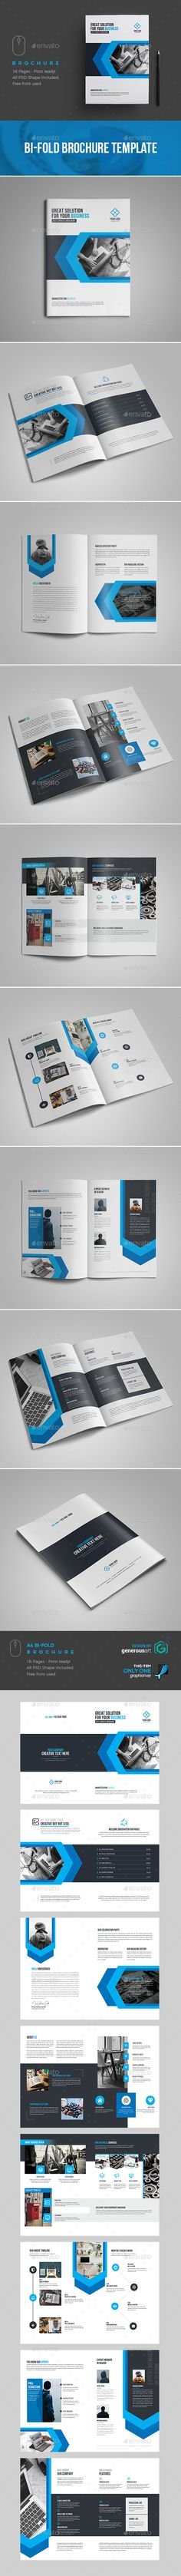 #Business #Brochure #Template - Brochures Print Templates Download here: https://graphicriver.net/item/business-brochure-template/19405304?ref=alena994